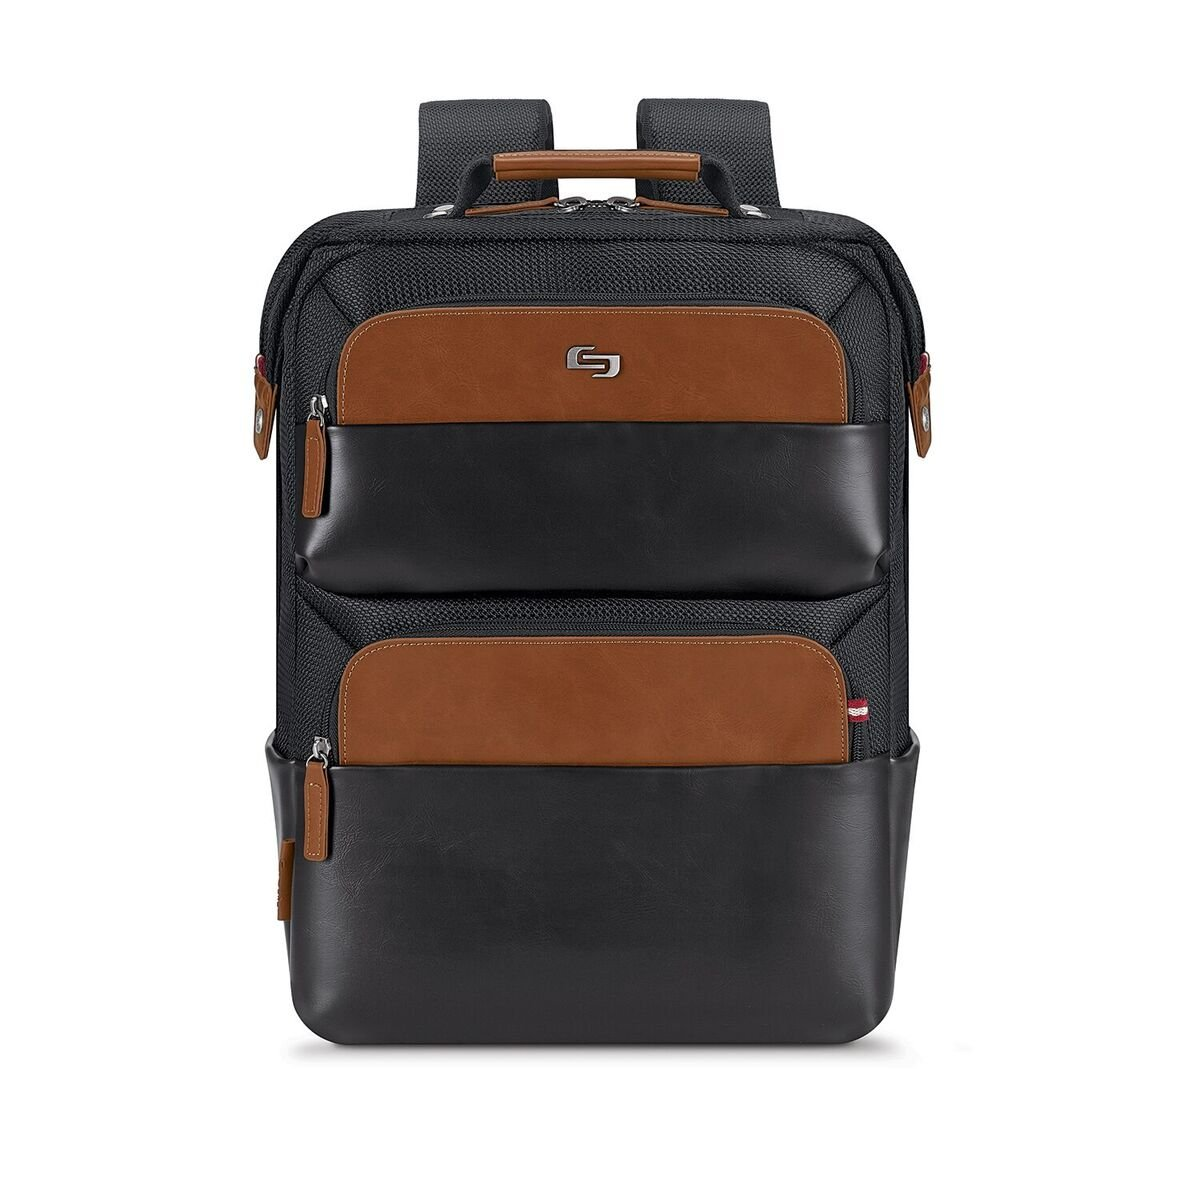 Solo East Hampton 15.6'' Laptop Backpack Briefcase, Black, One Size